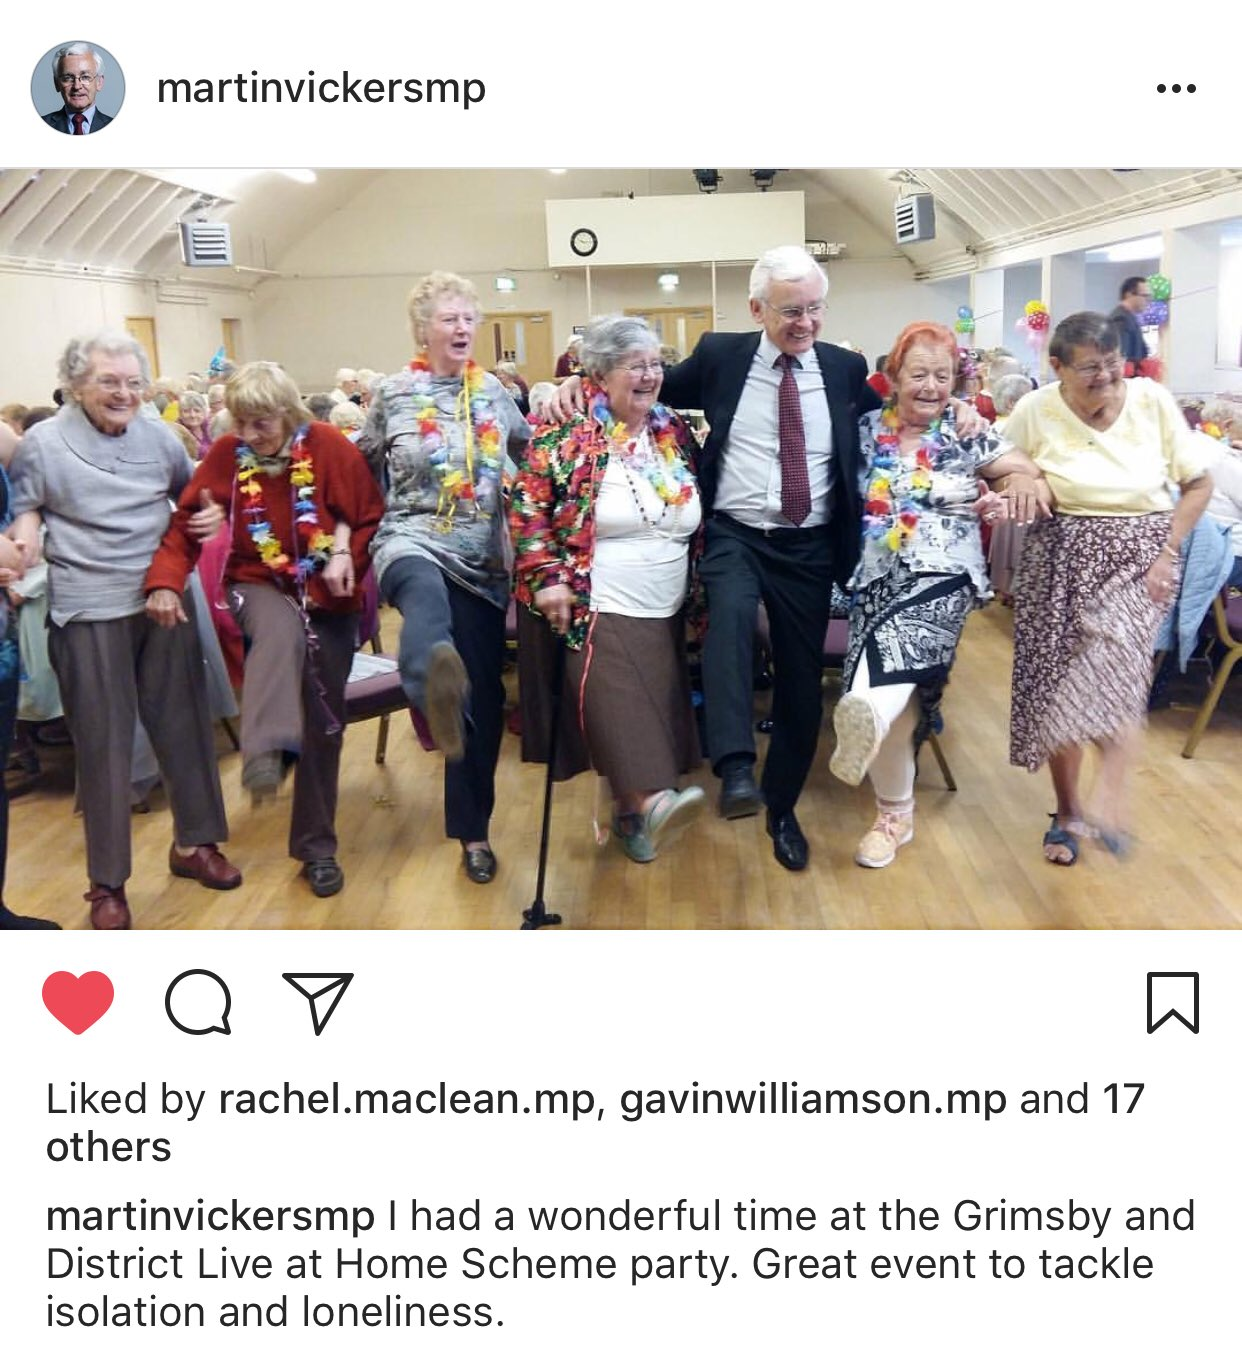 Love this joyful pic from @MartinVickers' insta https://t.co/EYhl6Cb1Ud https://t.co/USuMk344Zs